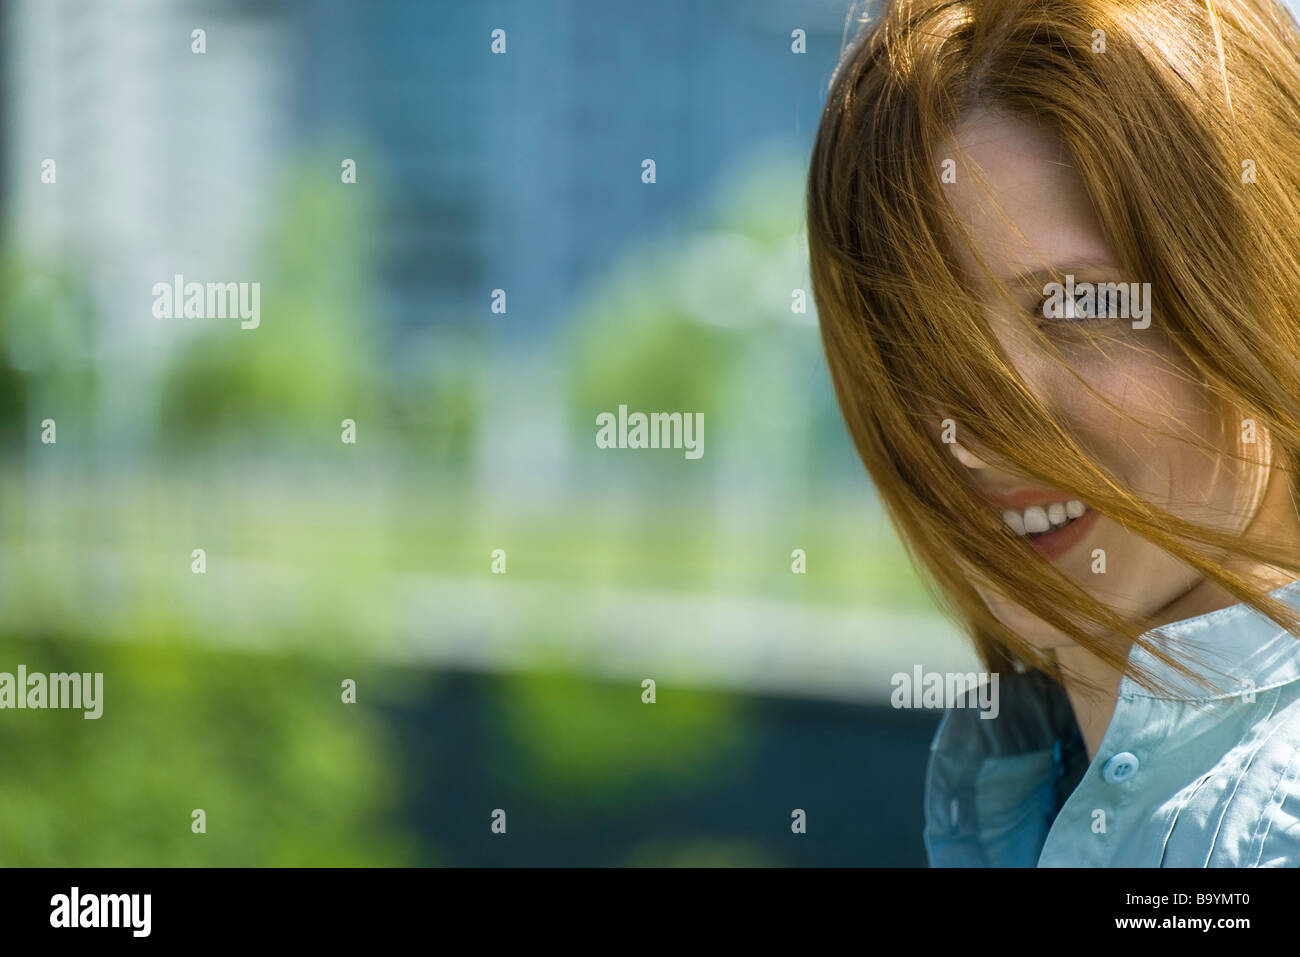 Young red haired woman with hair blowing across face, portrait - Stock Image